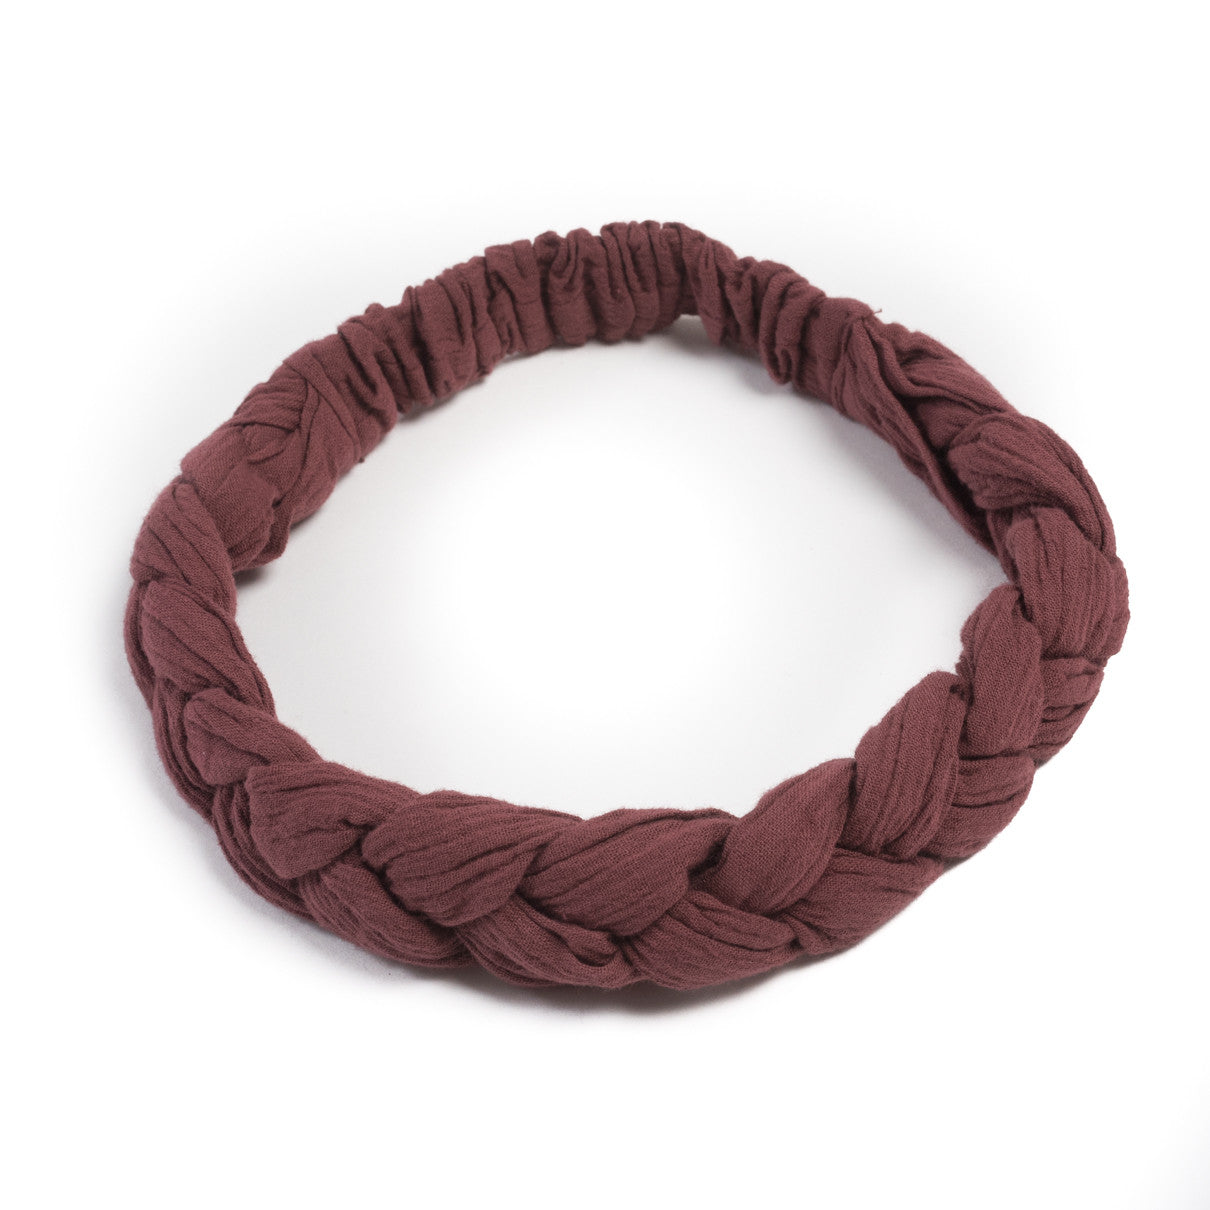 Bonton Brunette Braided Headband - Ladida